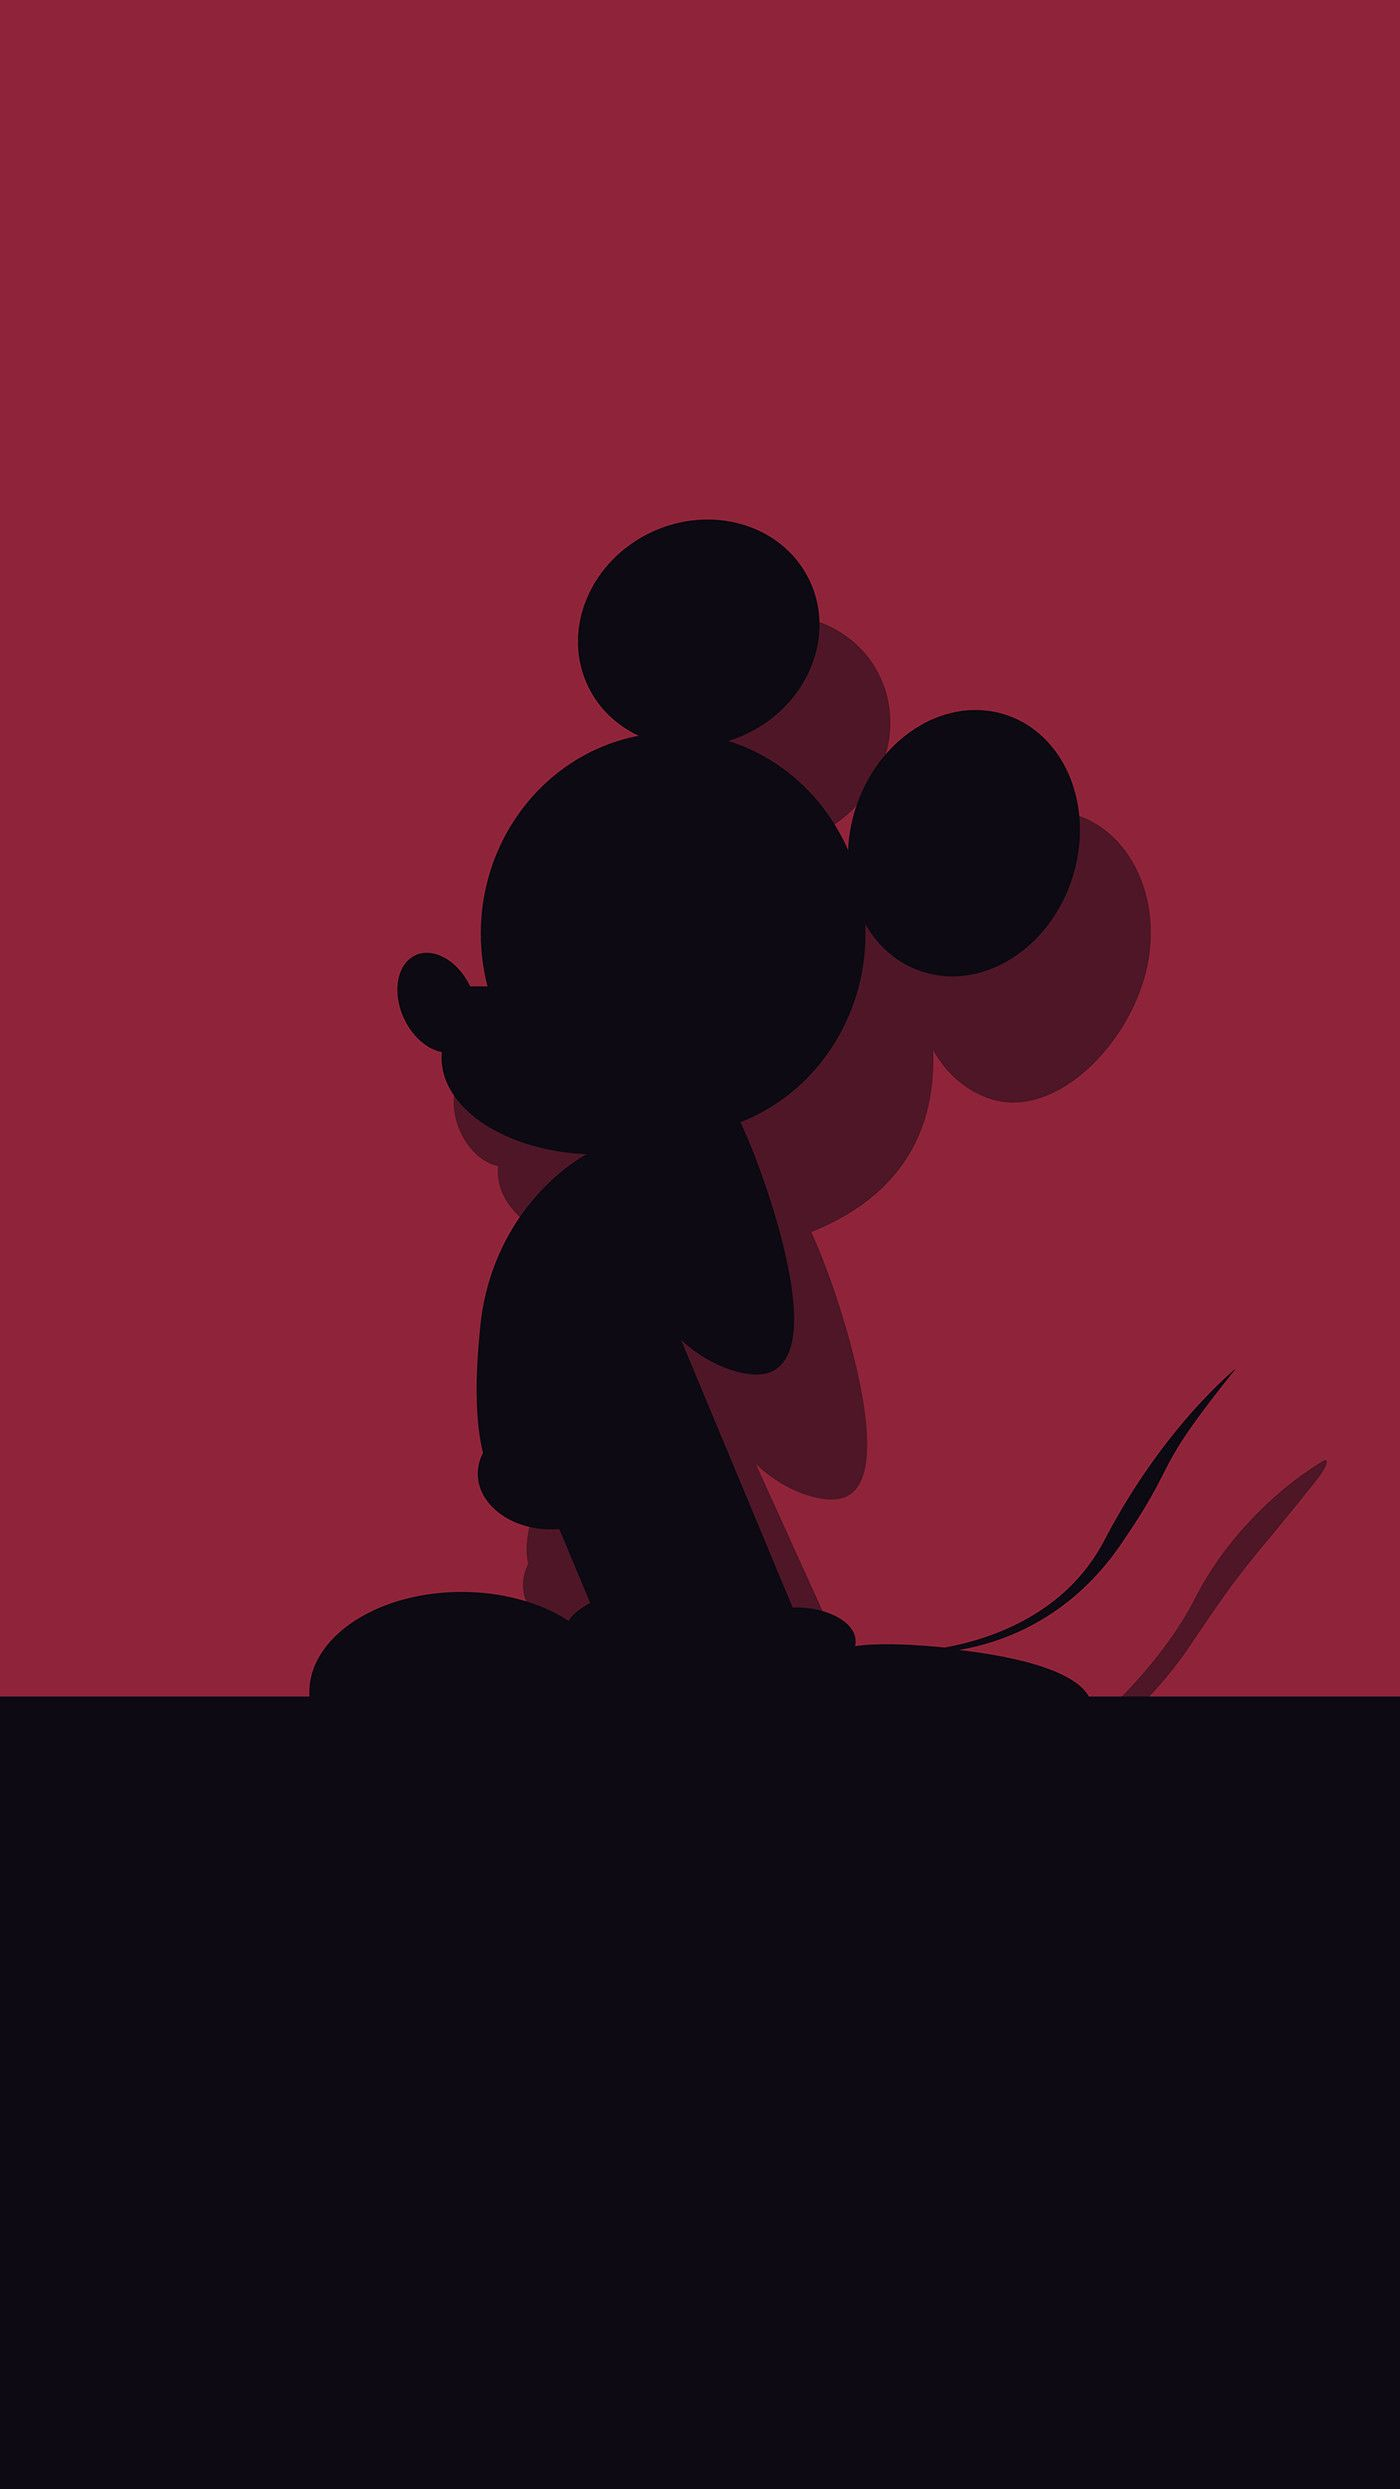 Mickey Mouse Wallpaper Aesthetic 3d Wallpapers Mickey Mouse Wallpaper Mickey Mouse Pictures Mickey Mouse Art